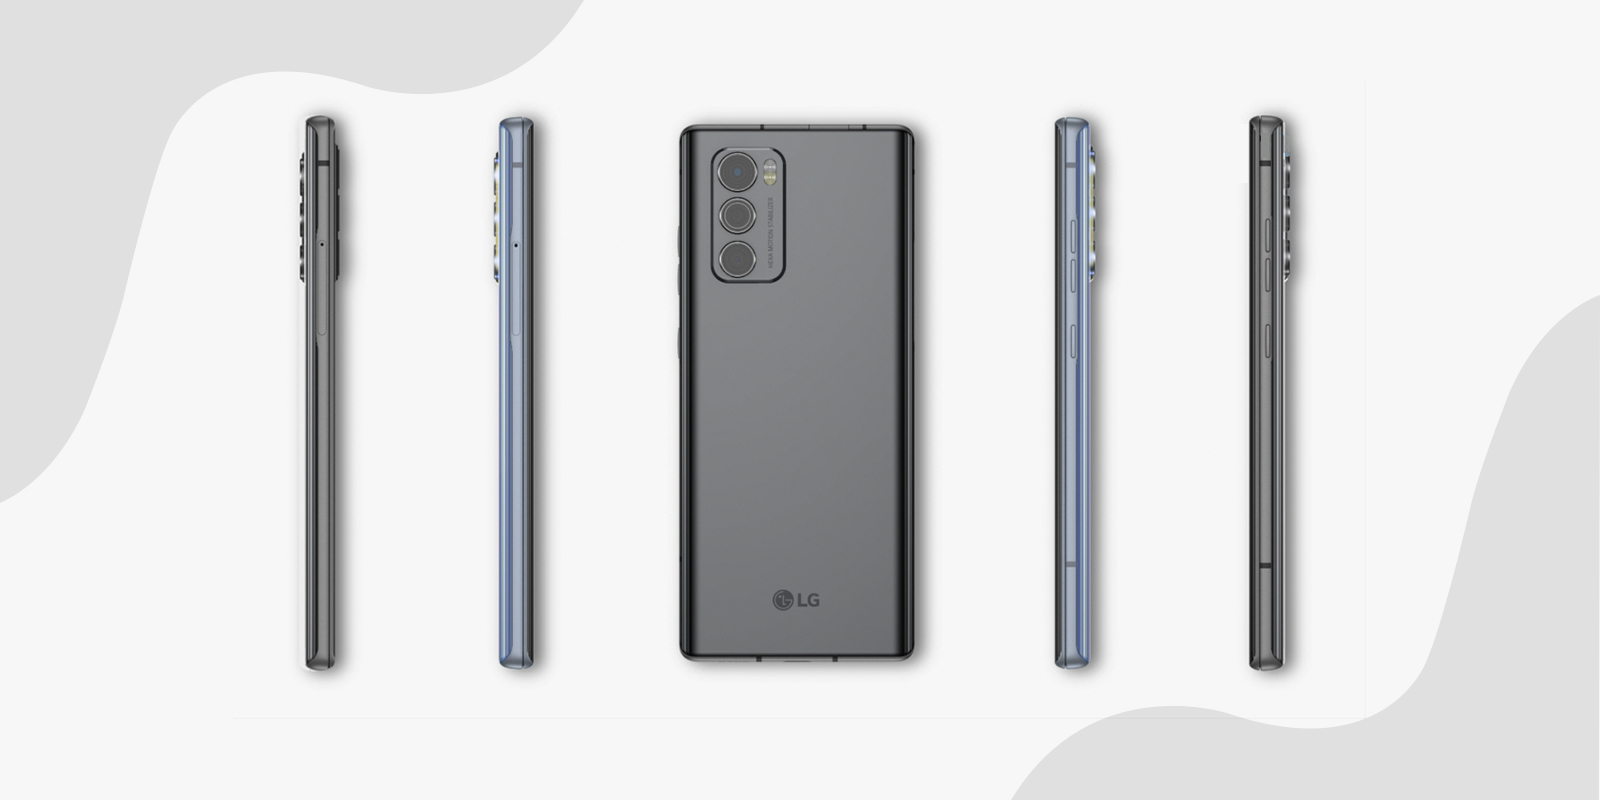 Rear view of LG WING smartphone